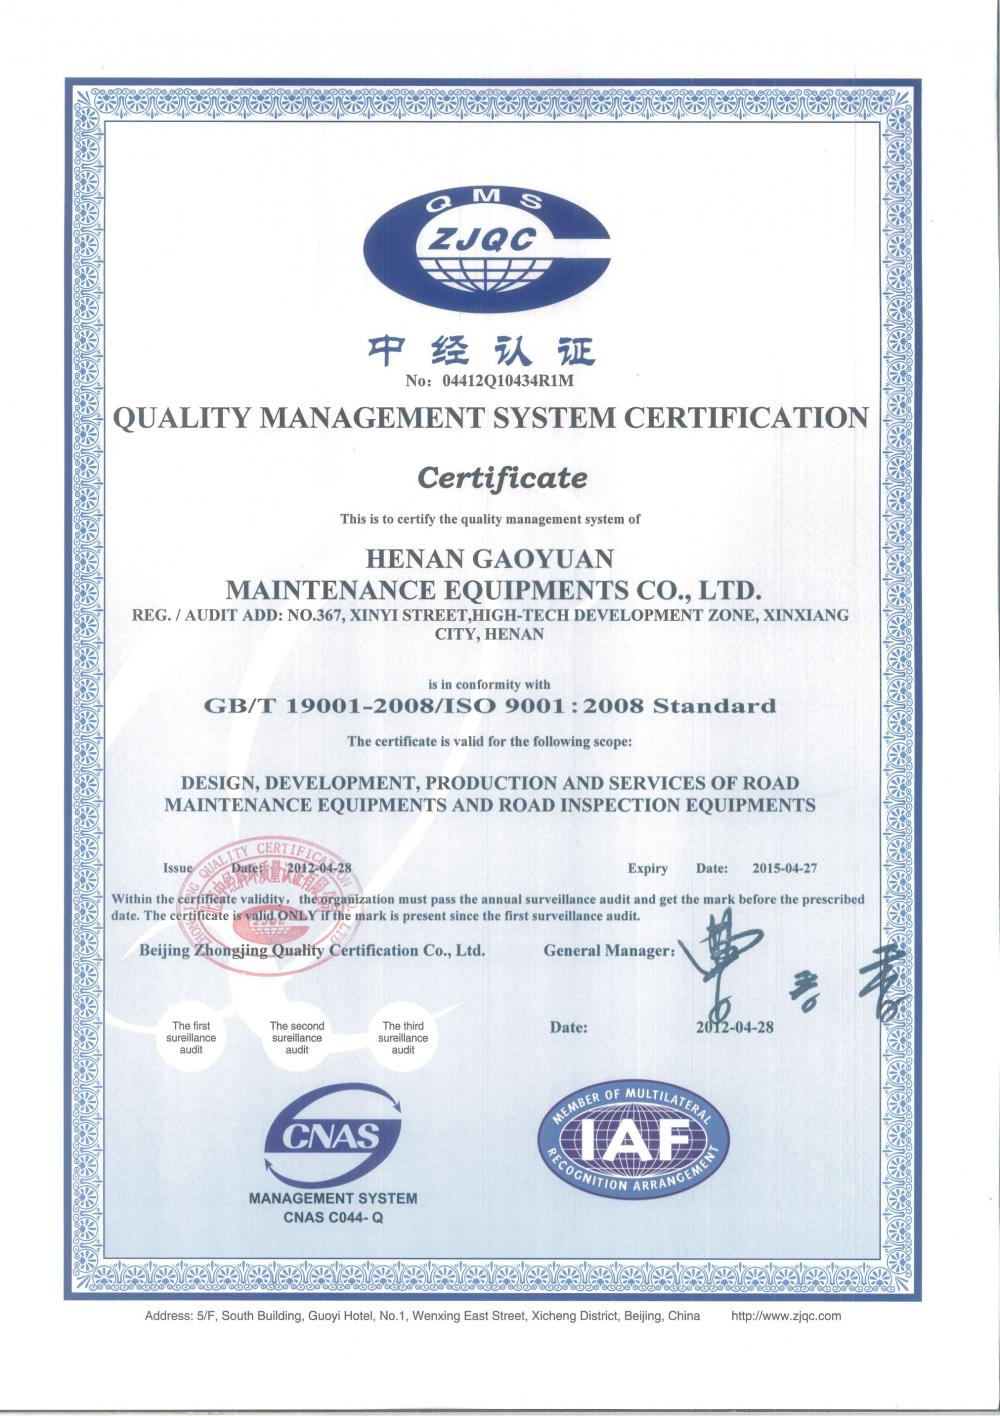 QUALITY MANGEMENT SYSTEM CERTIFICATION